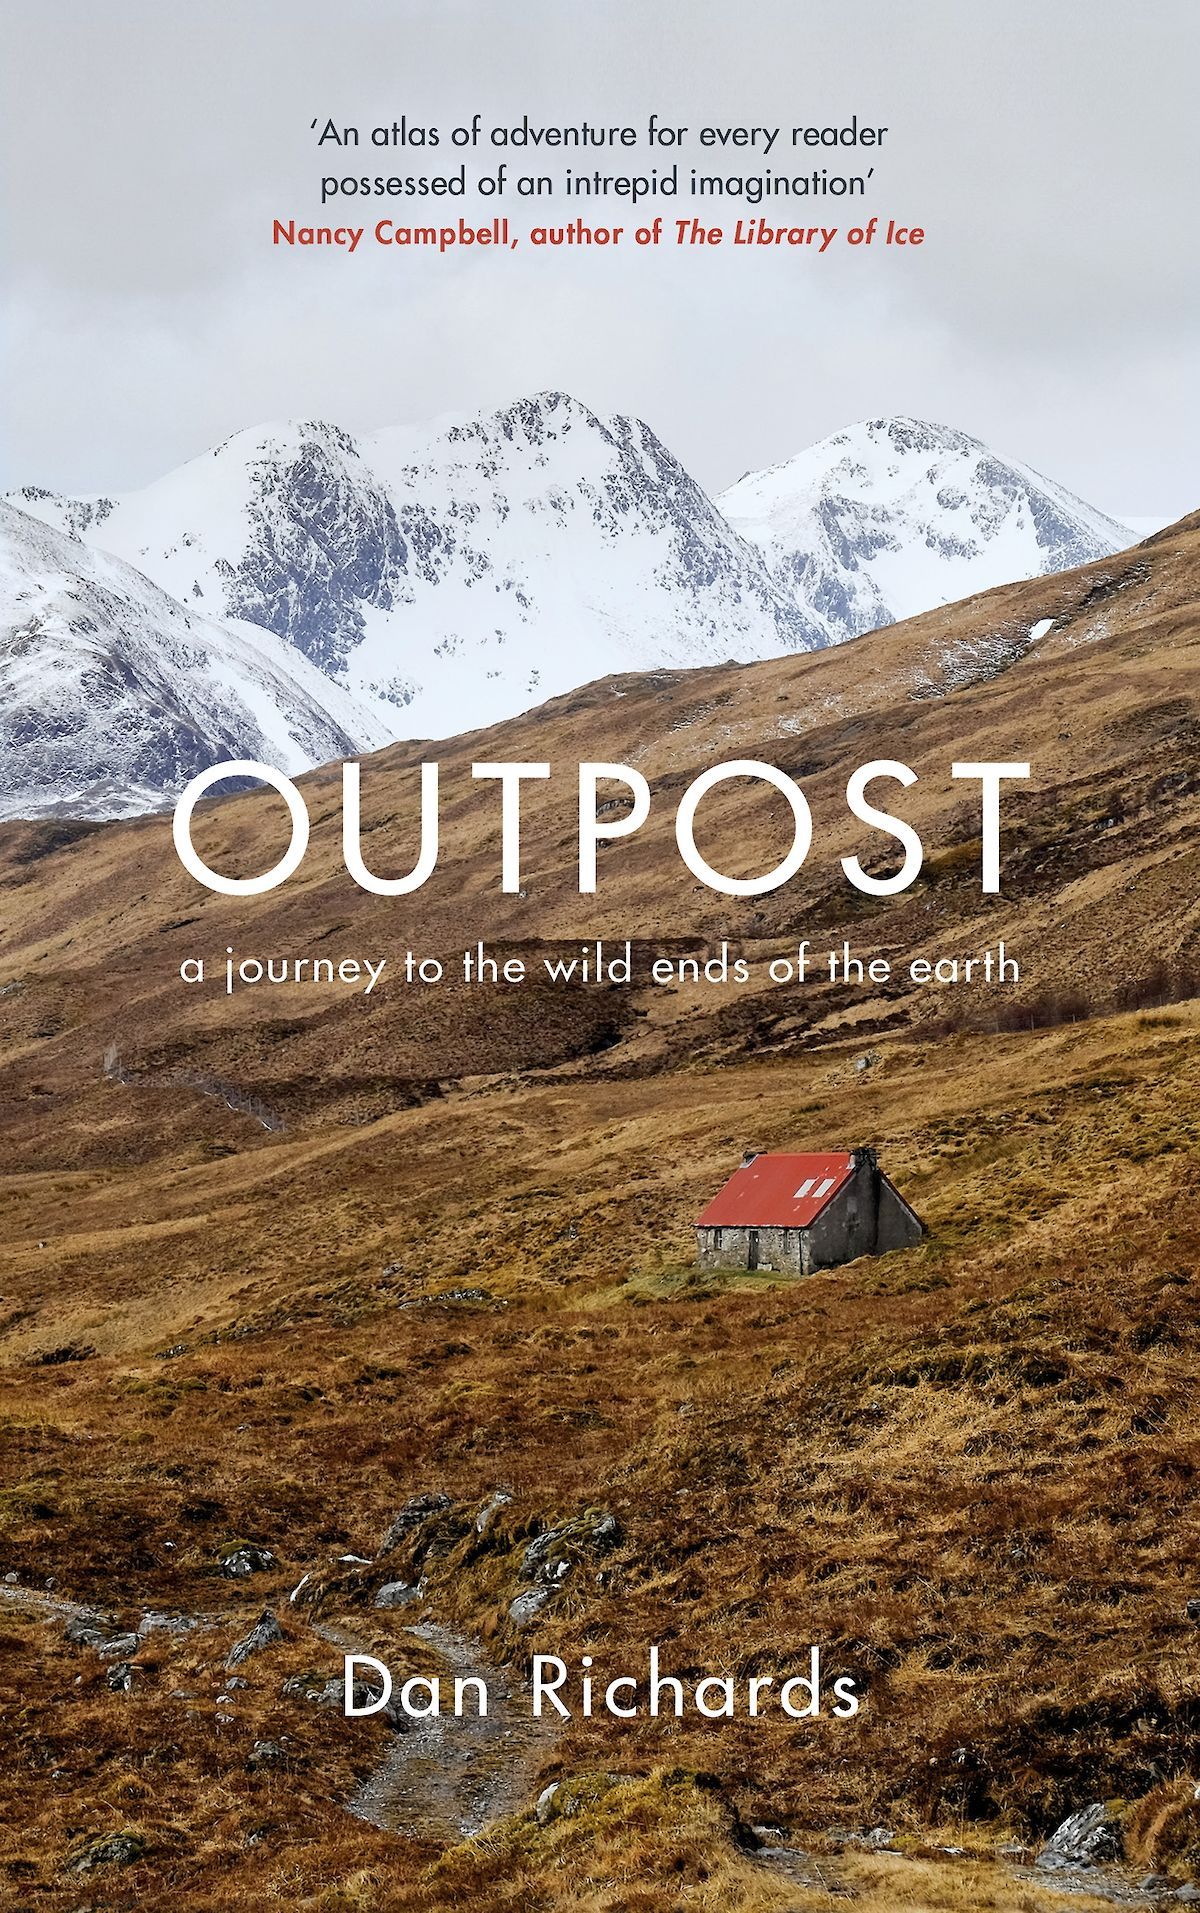 Outpost: A Journey to the Wilds Ends of the Earth, by Dan Richards . Publisher: Canongate Books Ltd, 2019.